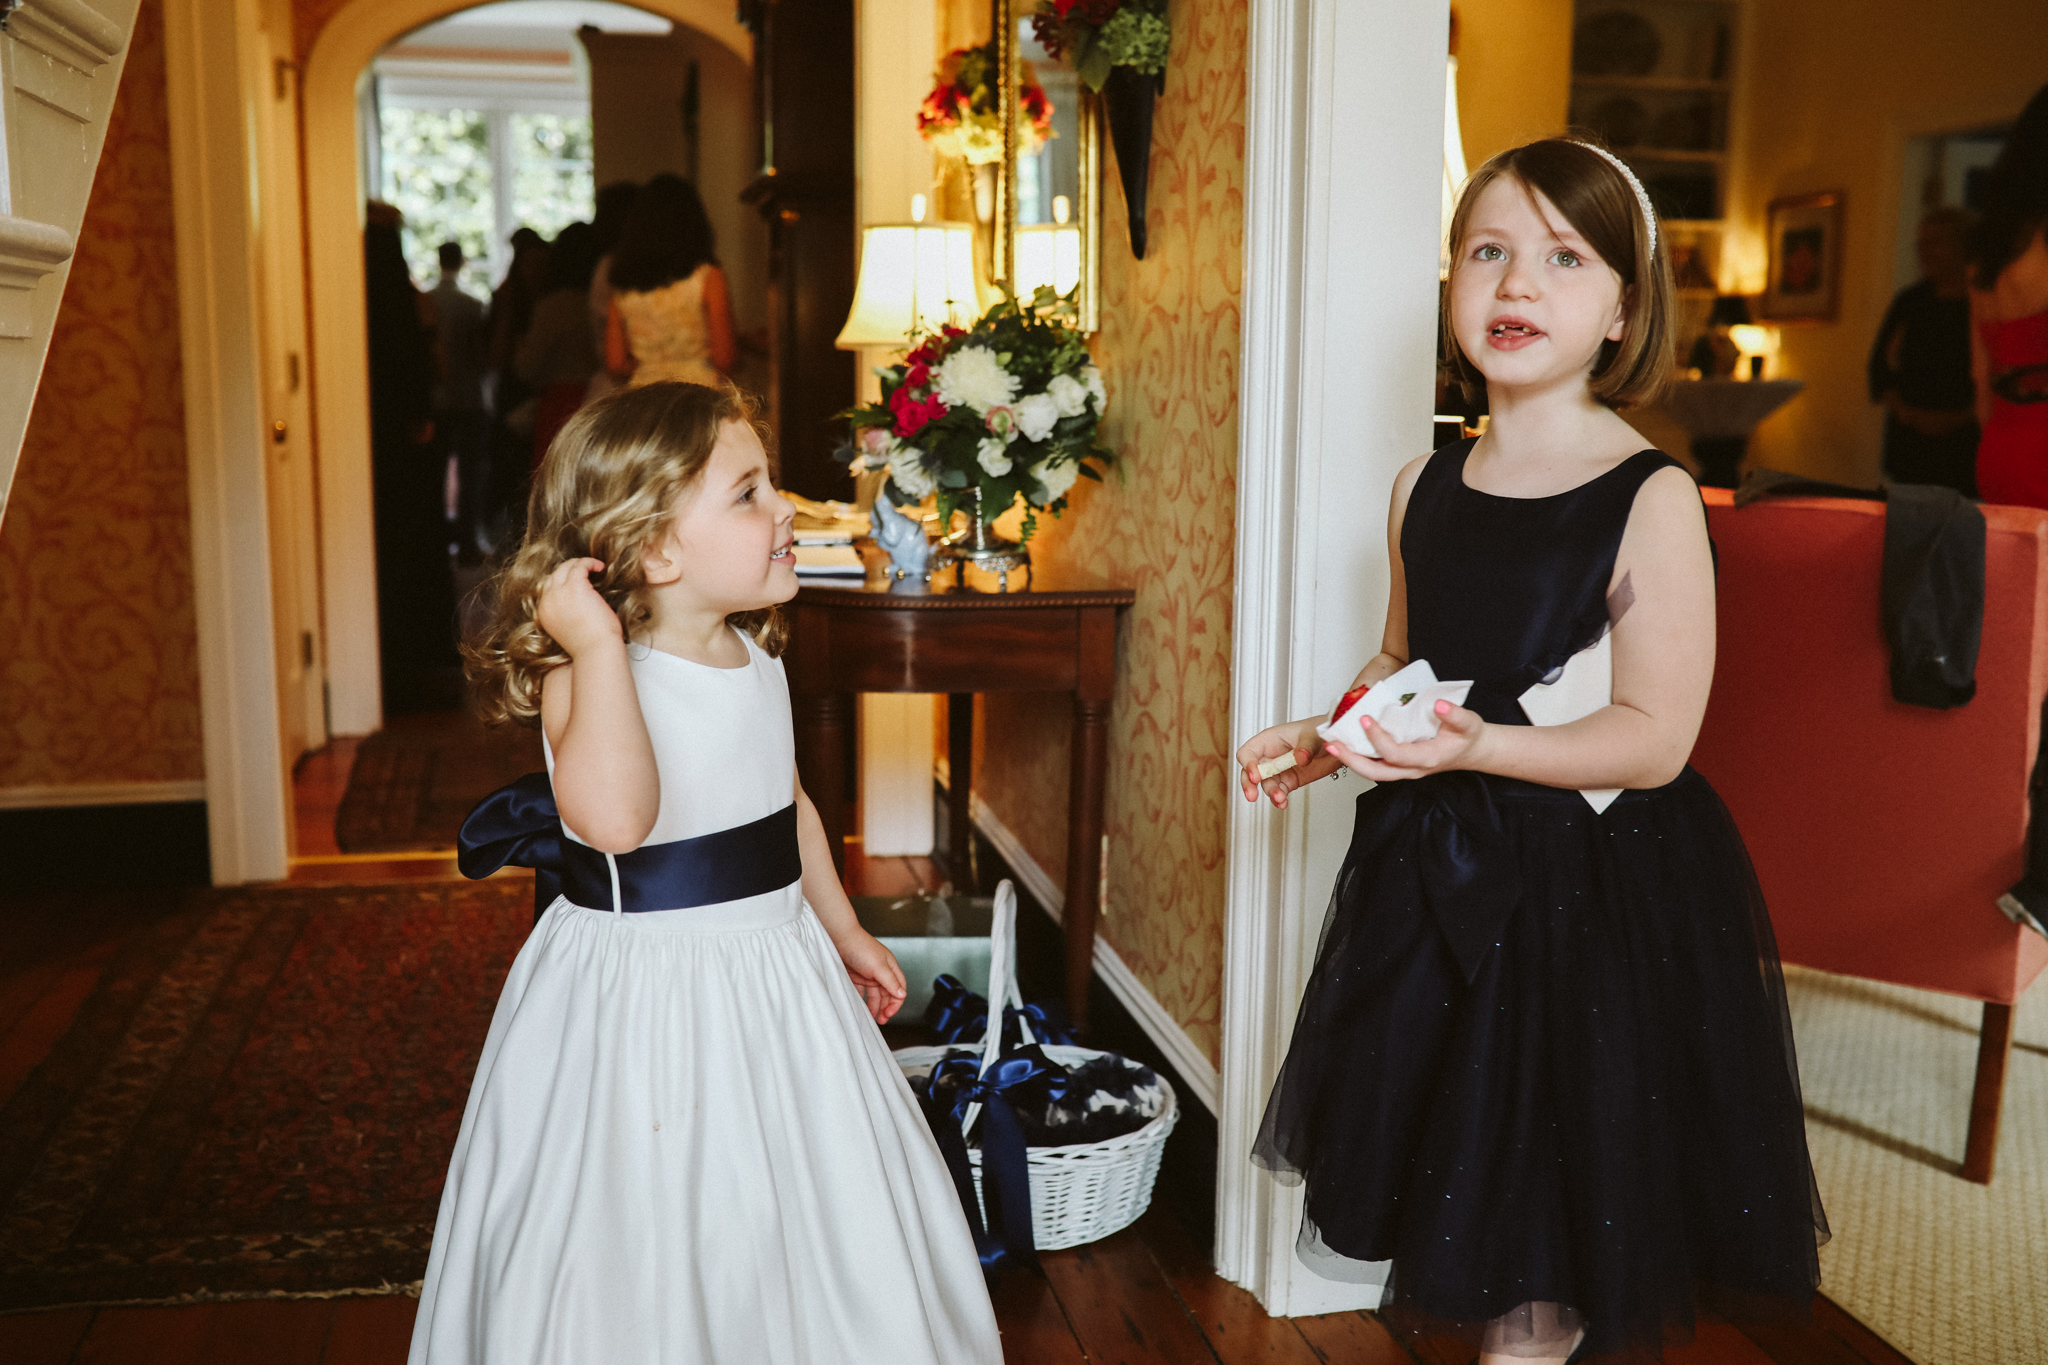 cook_wedding_richmond_virginia_rebecca_burt_photography-22.jpg